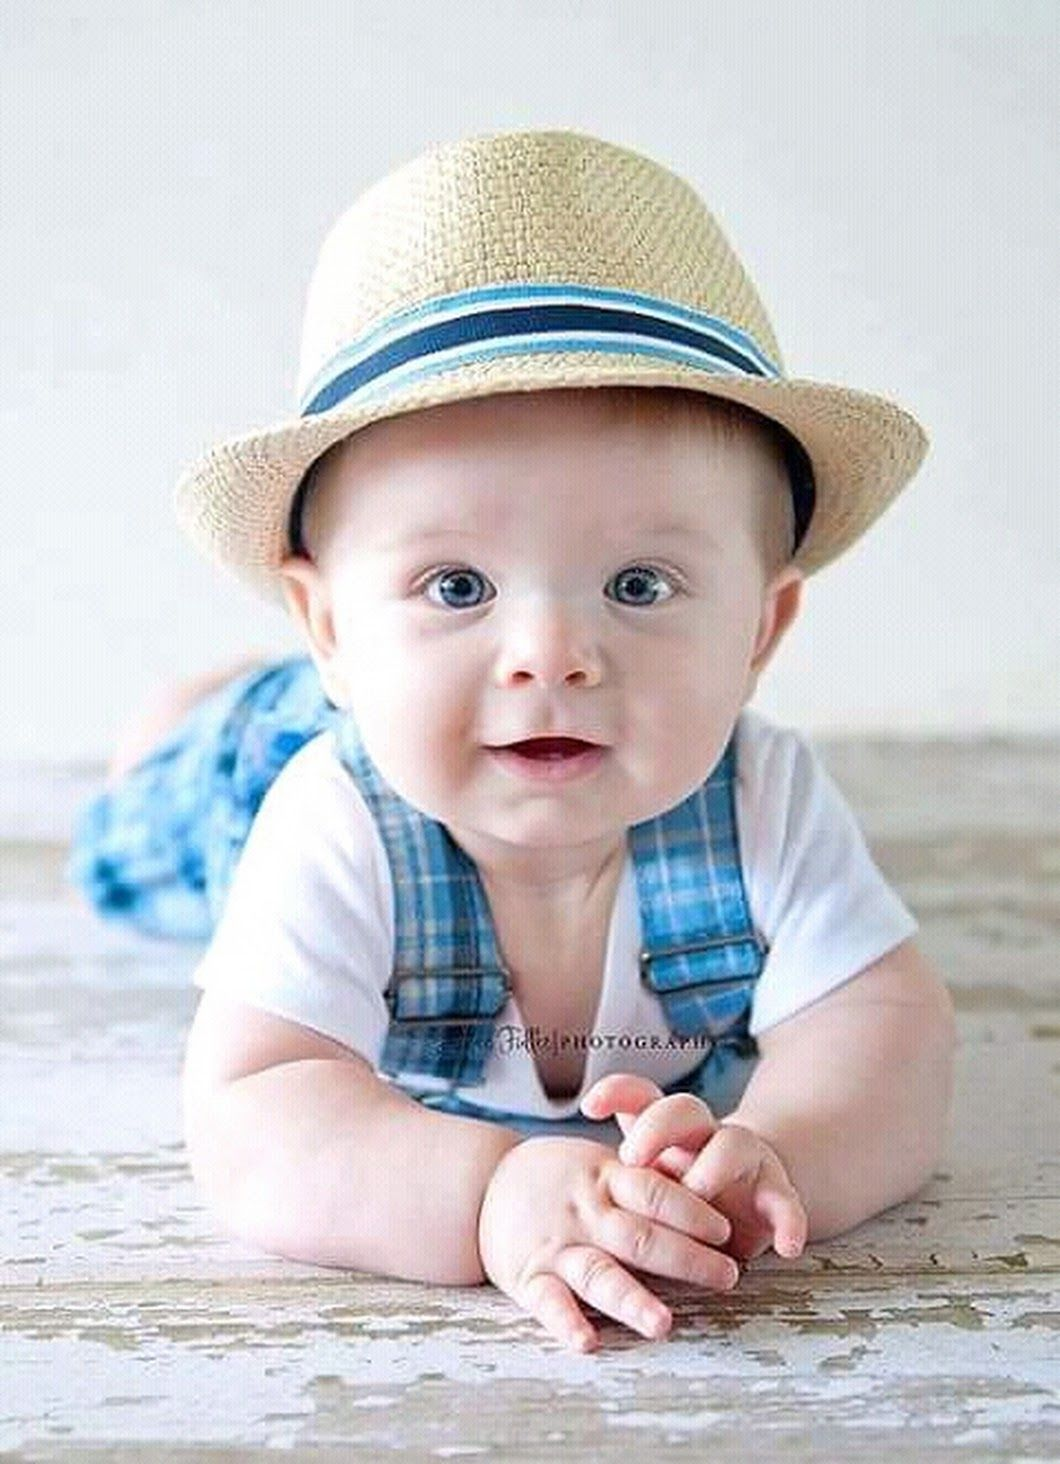 Pin by Hunny Adam on Cute Babies | Baby boy pictures, Baby ...